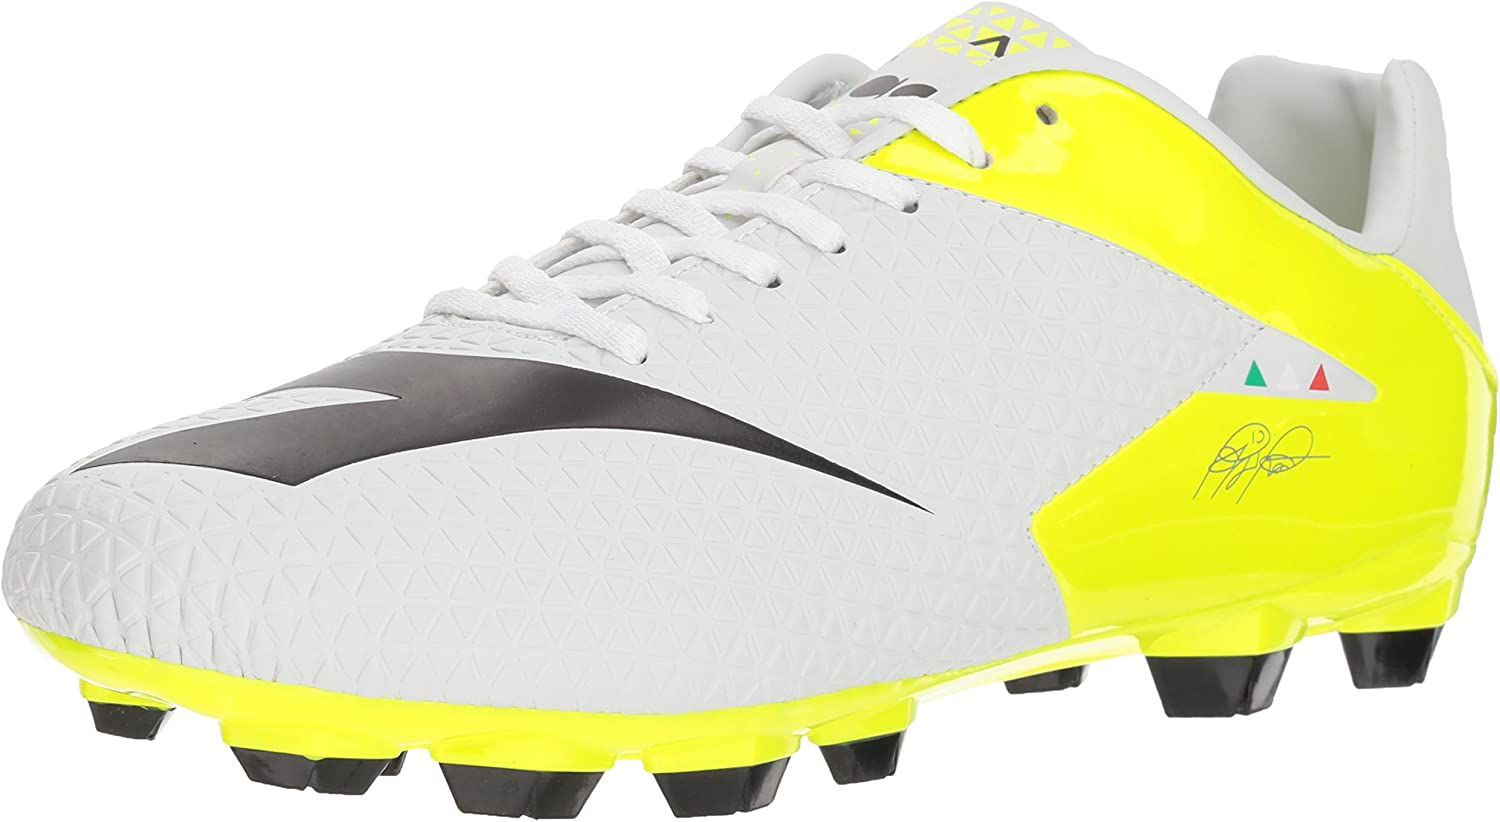 Diadora Soccer Men's MW-Tech RB RLPU, White Black Fluo Yellow, 6.5 Medium US